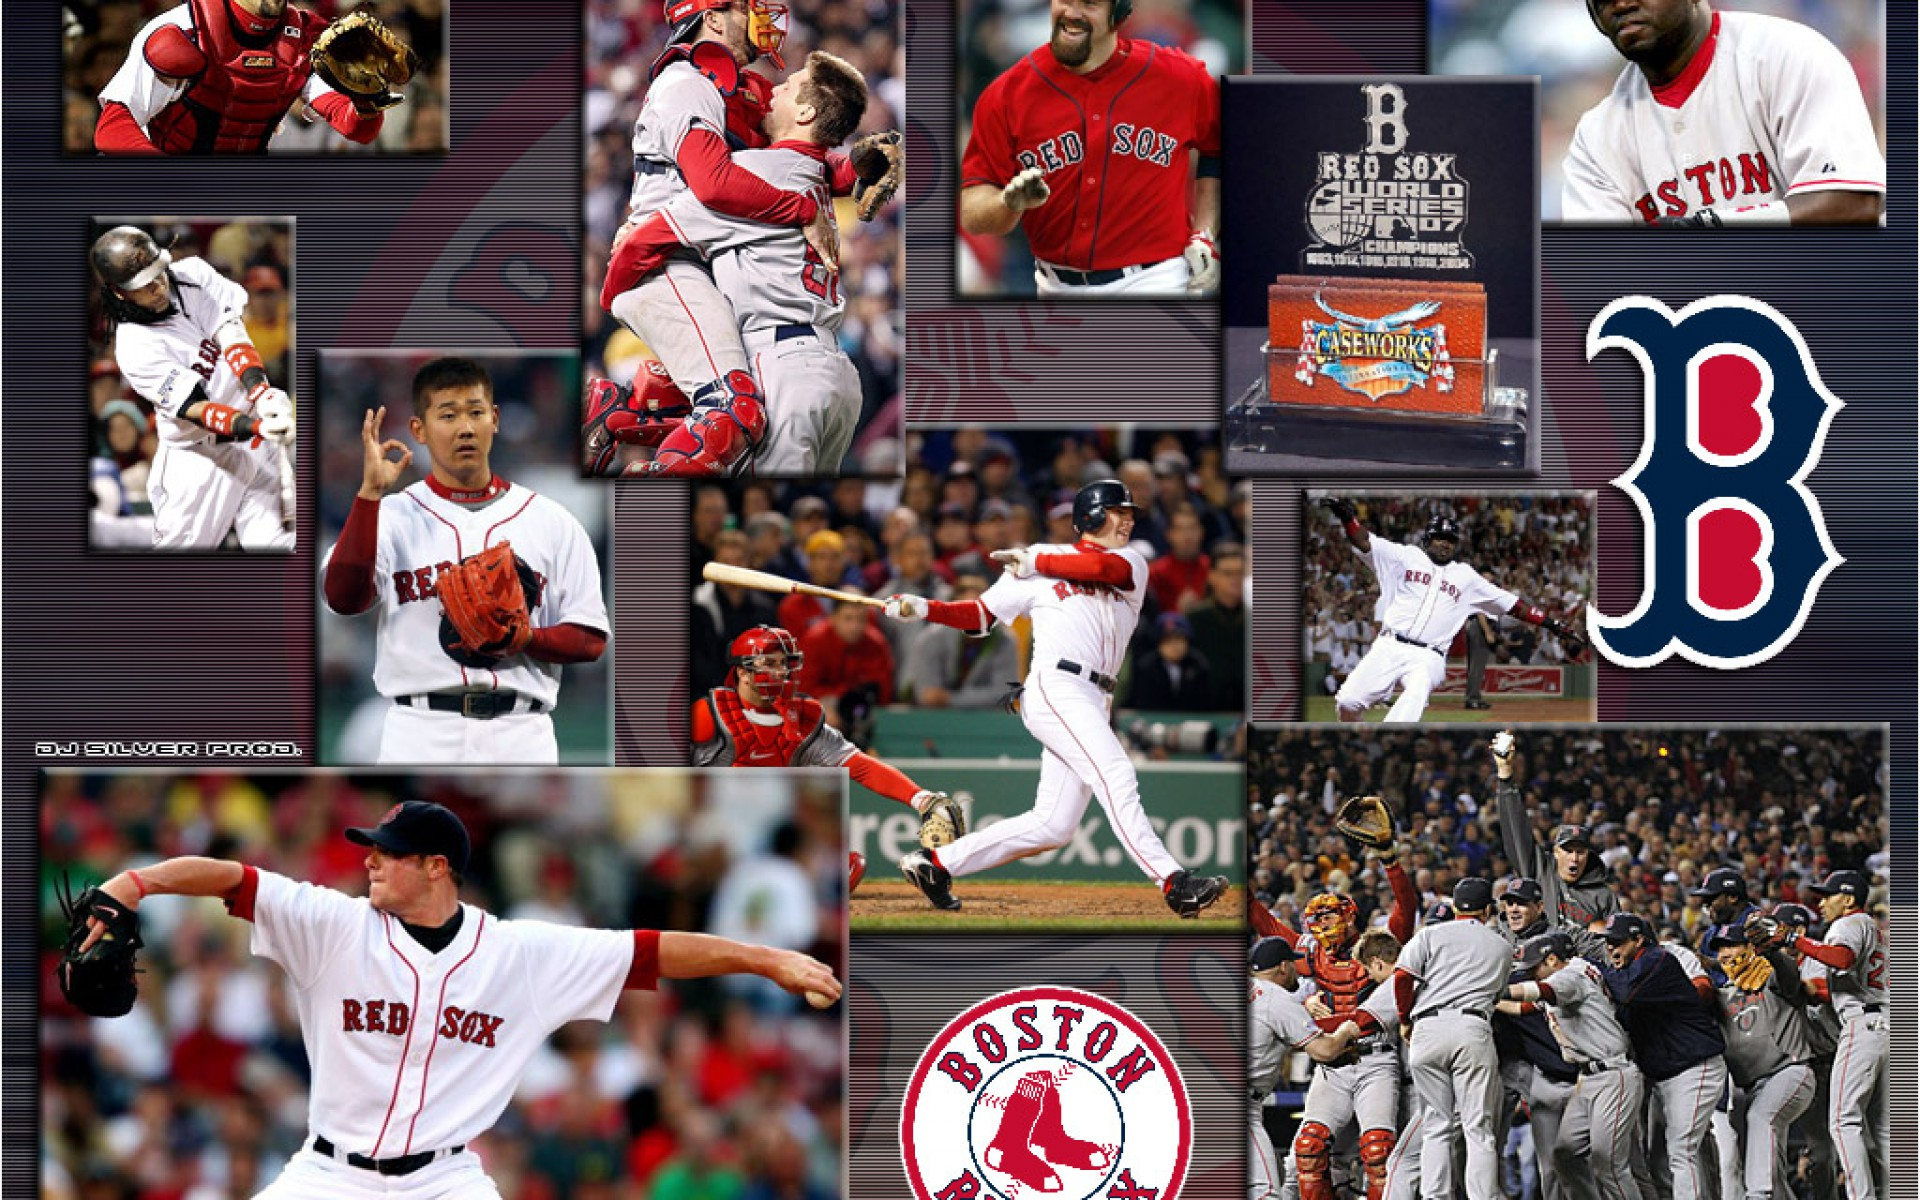 BOSTON RED SOX baseball mlb gh wallpaper 1920x1200 158192 1920x1200